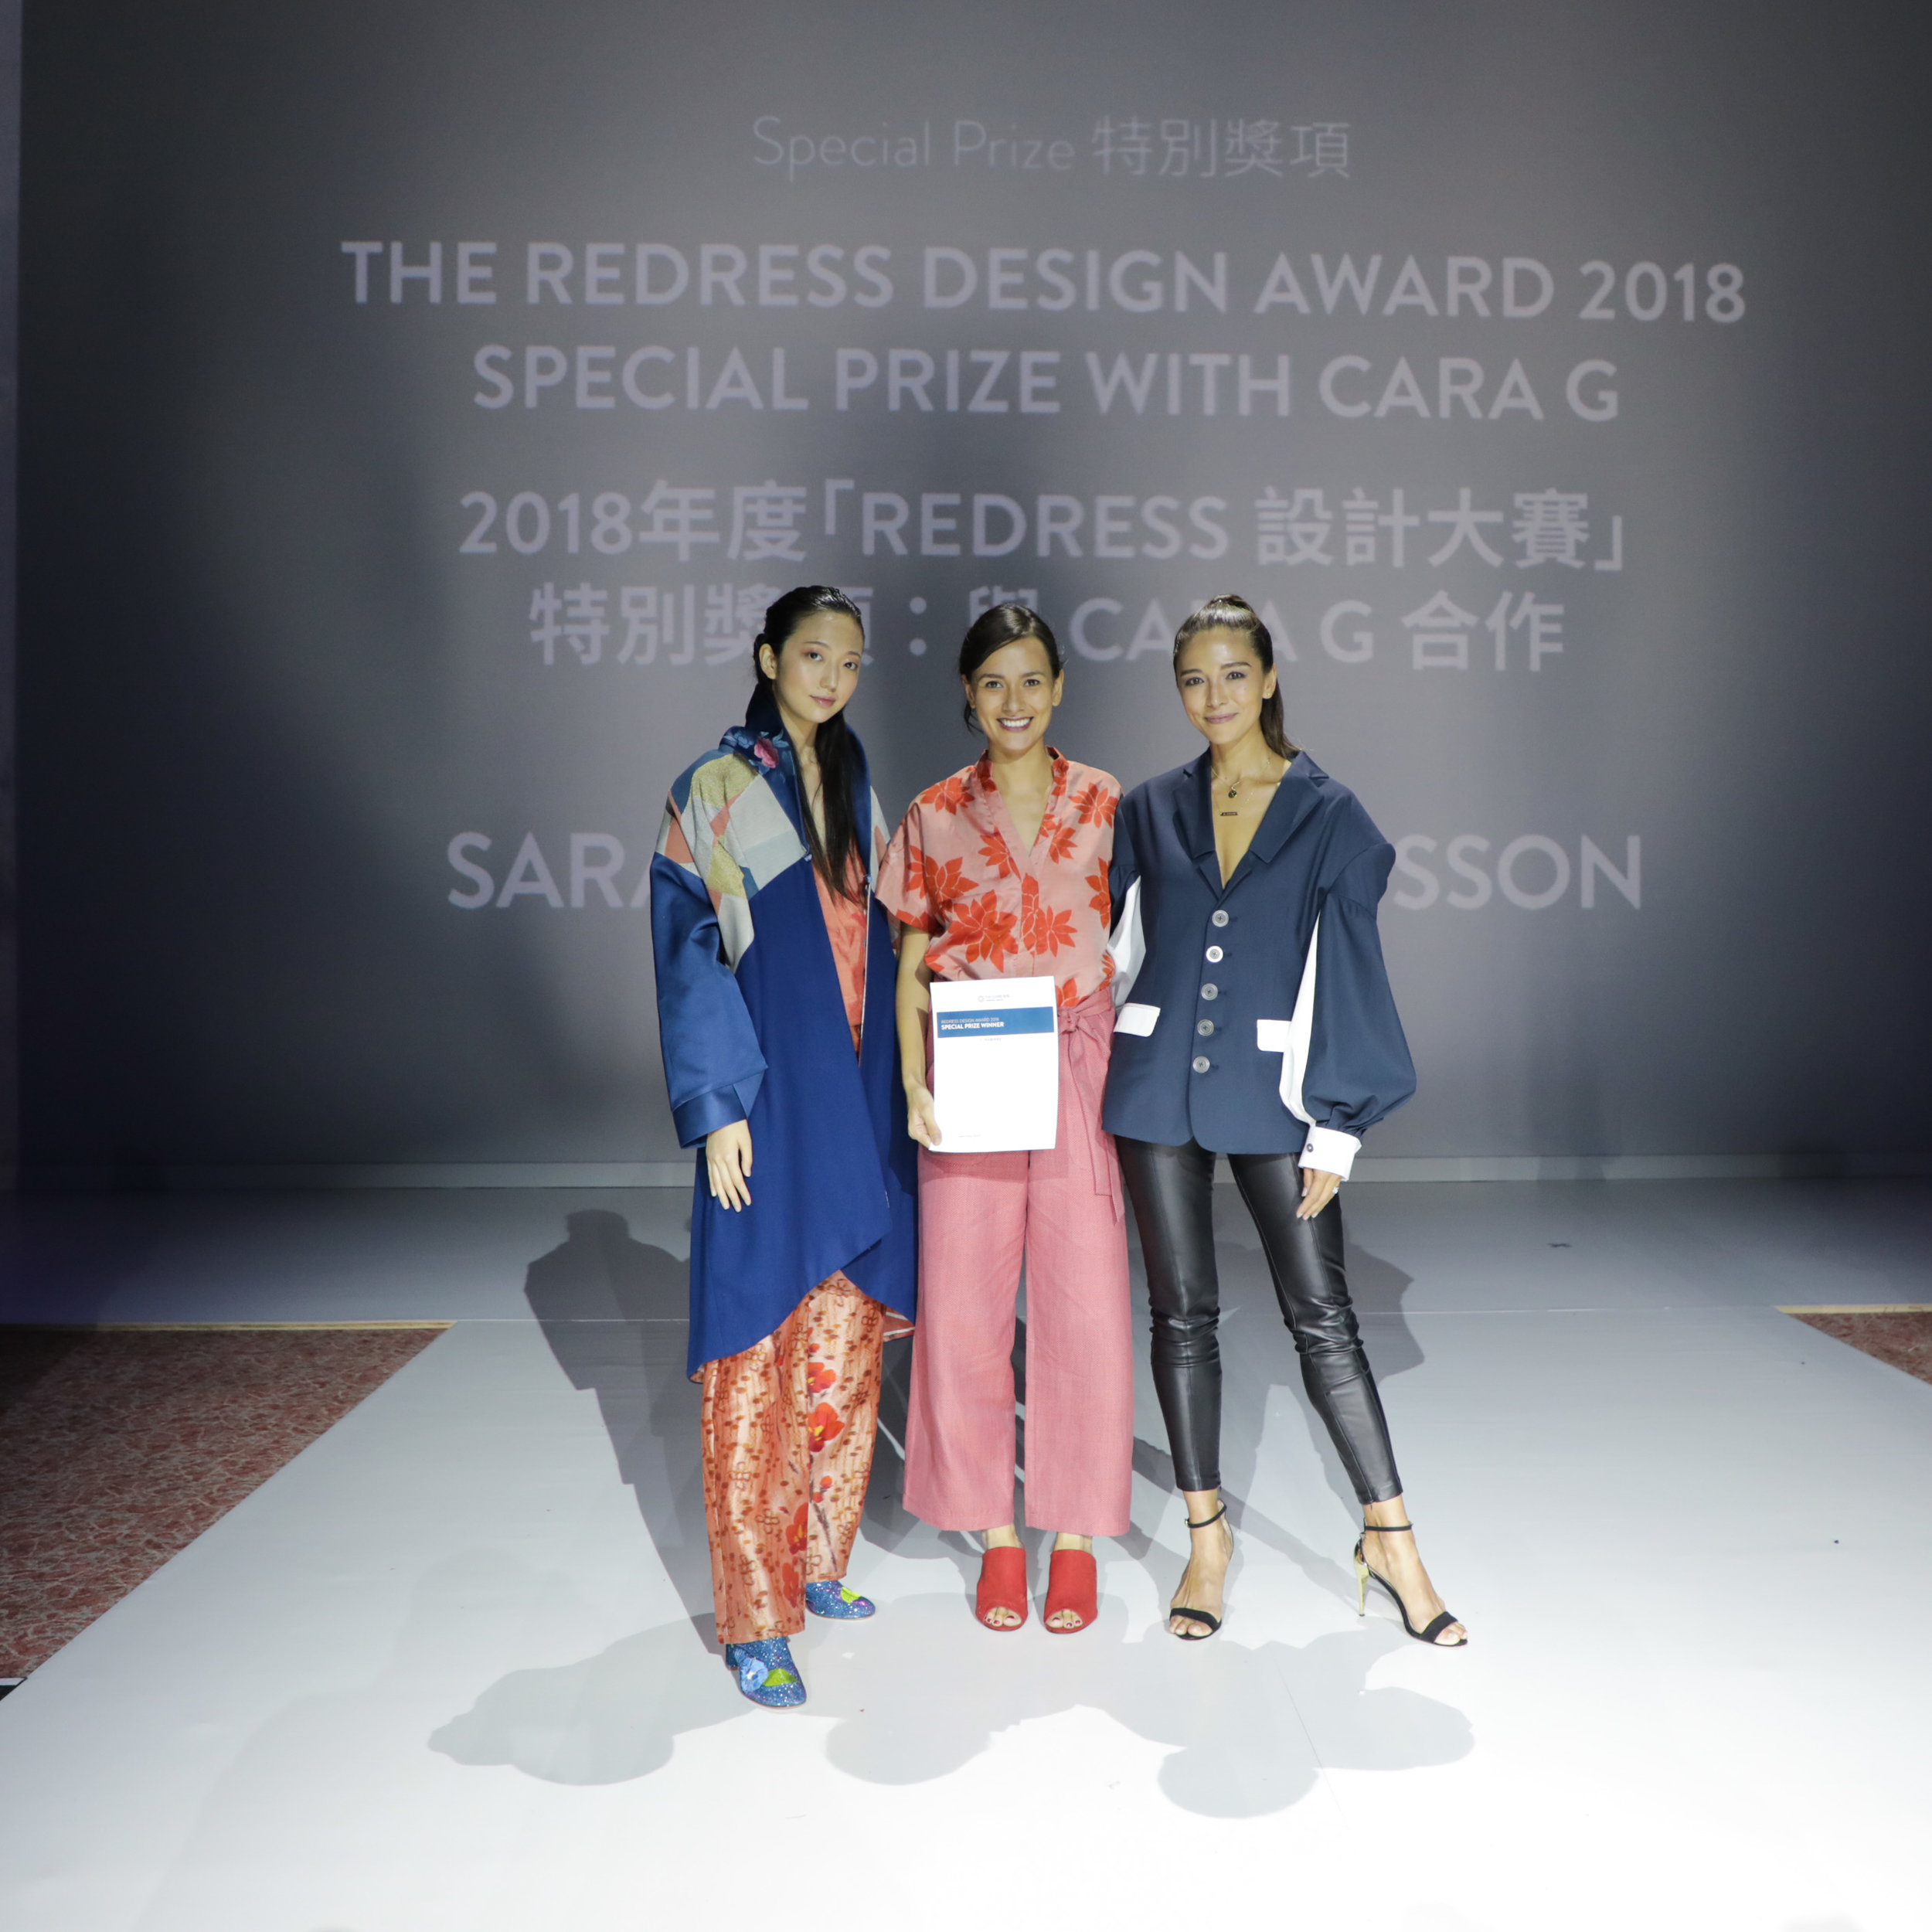 Redress Design Award 2018 Special Prize with Cara G Winner_Sarah Jane Fergusson.jpg